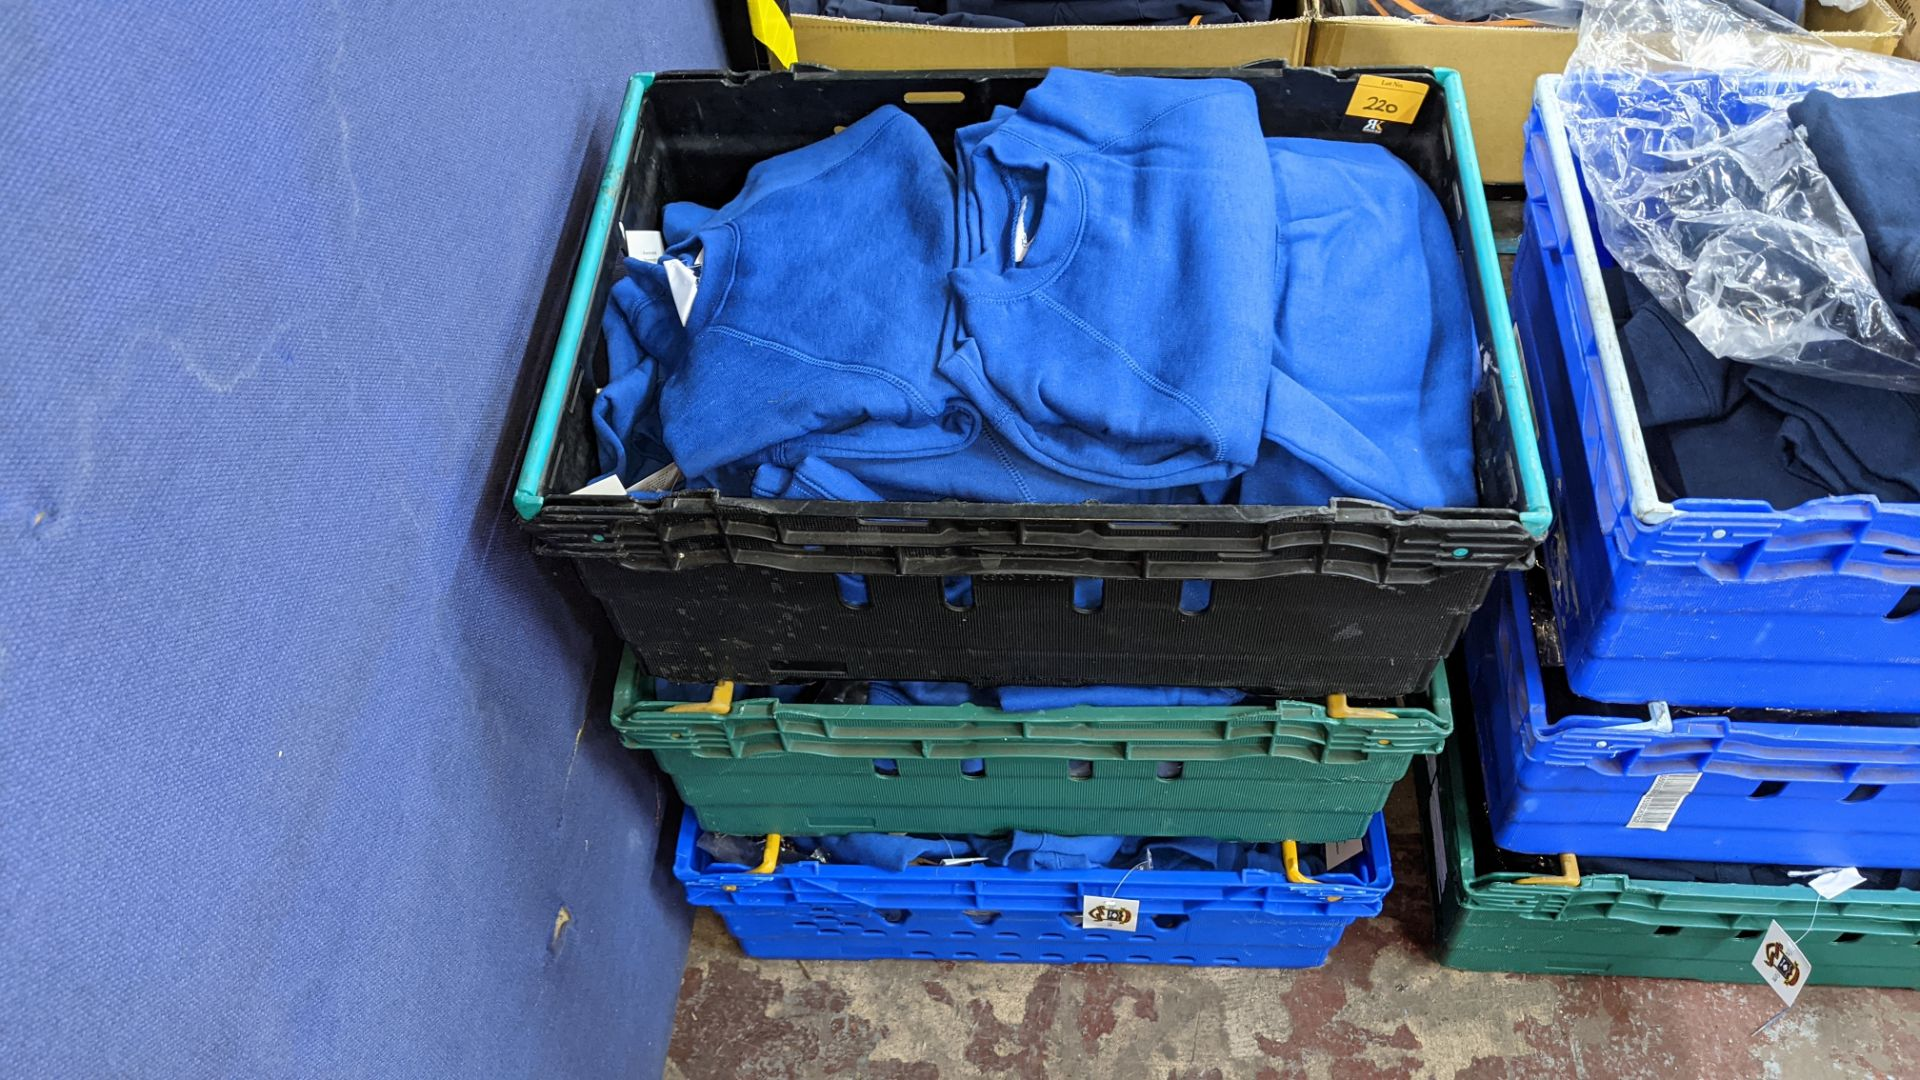 Approx 58 off children's blue sweatshirts - the contents of 3 crates. NB crates excluded